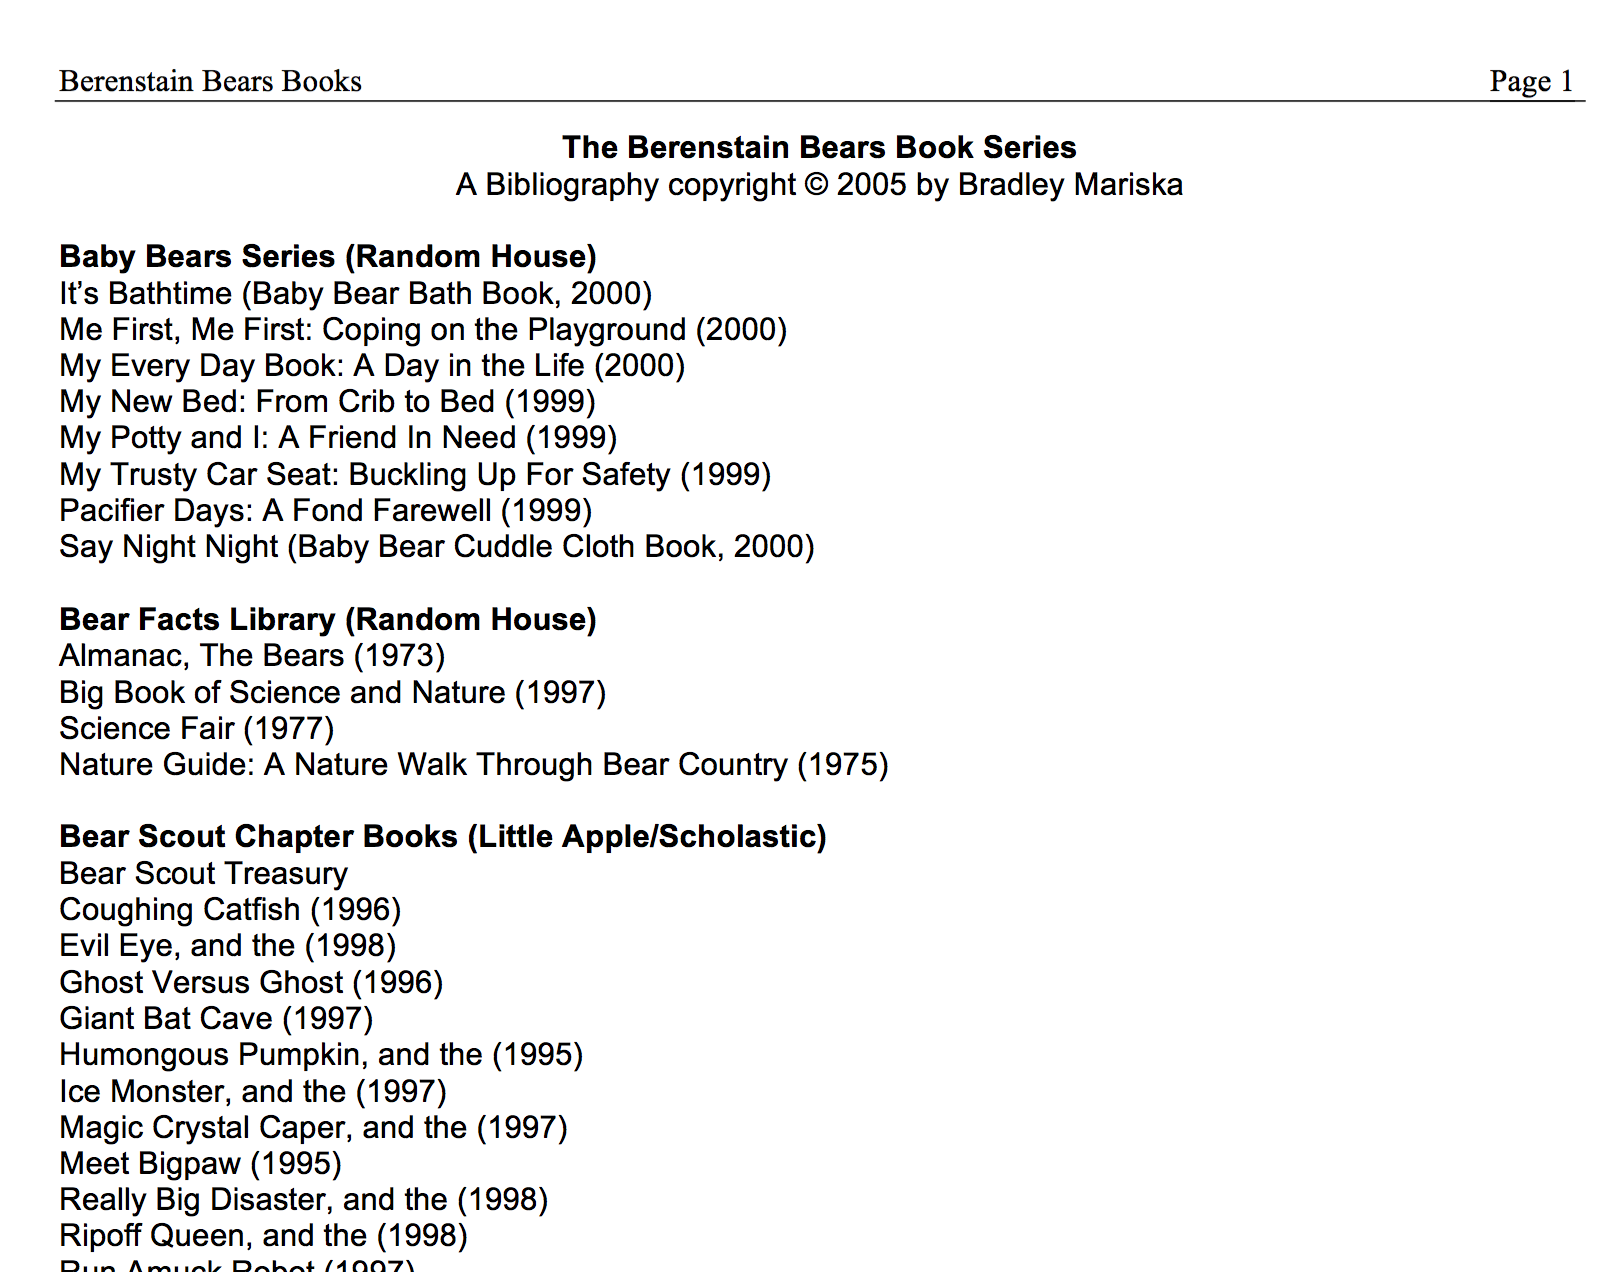 How many books should I have on my bibliography?